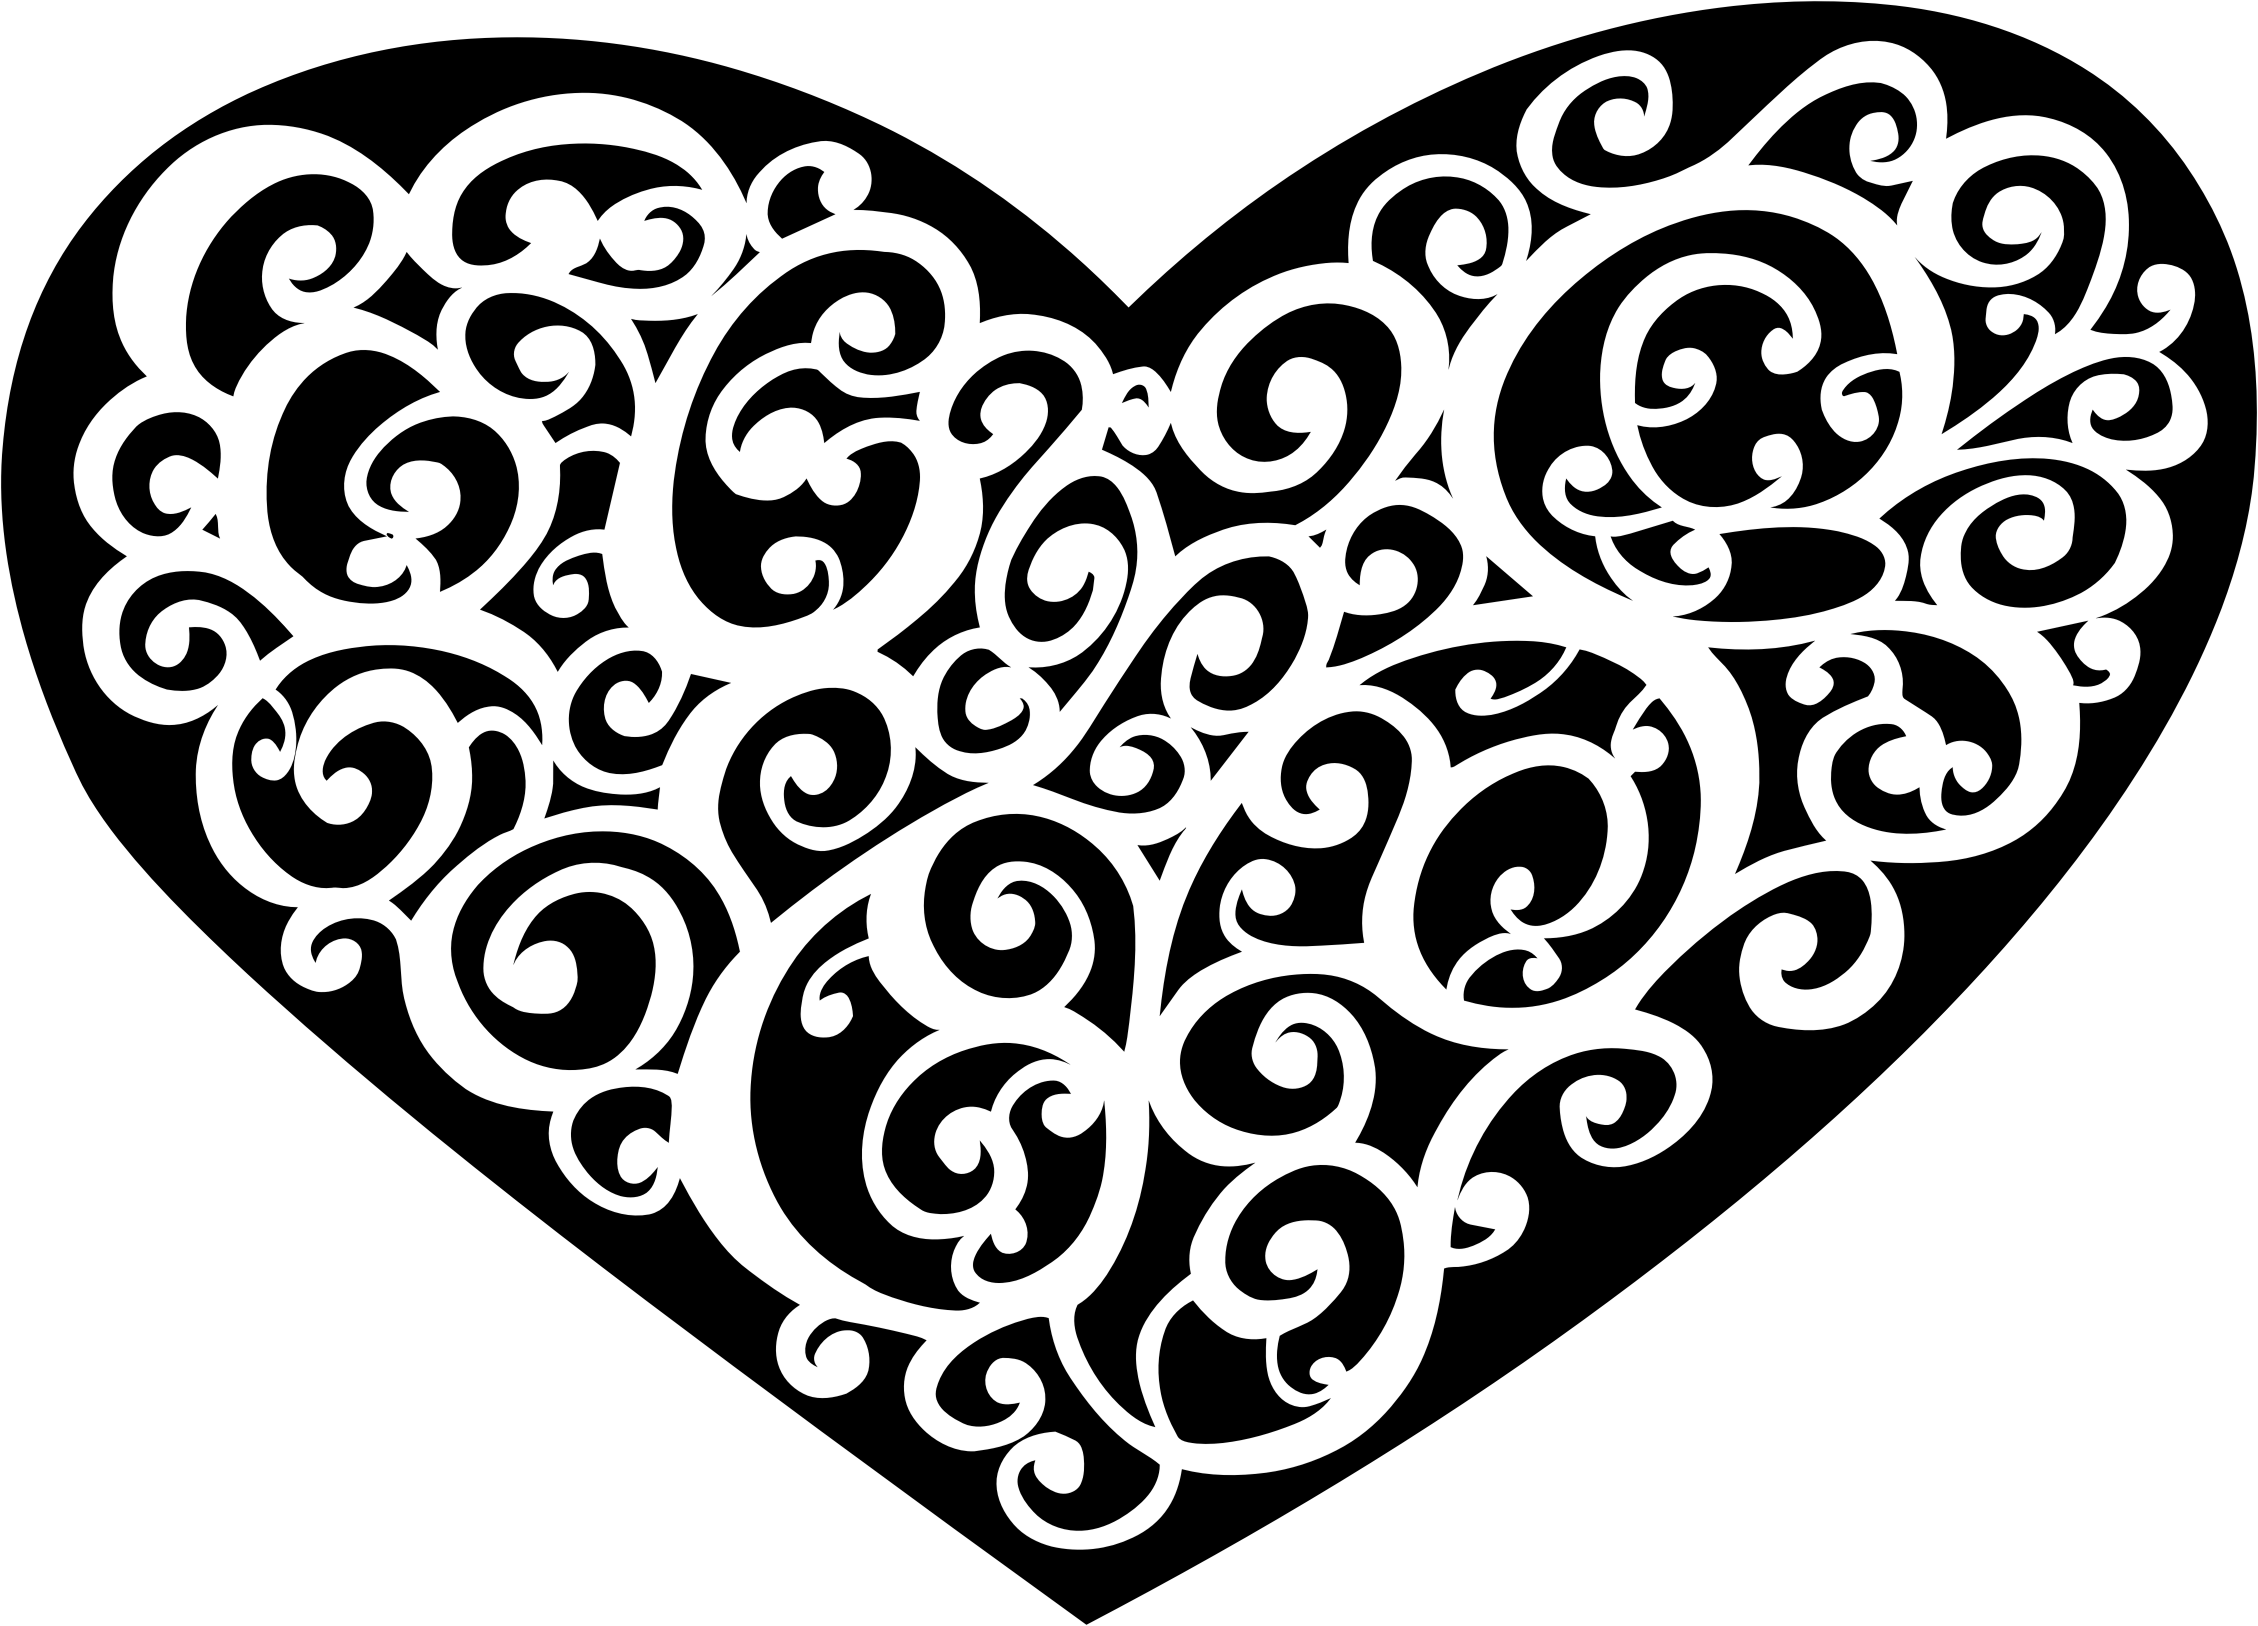 Heart Line Drawing Clip Art at GetDrawings.com | Free for personal ... vector stock